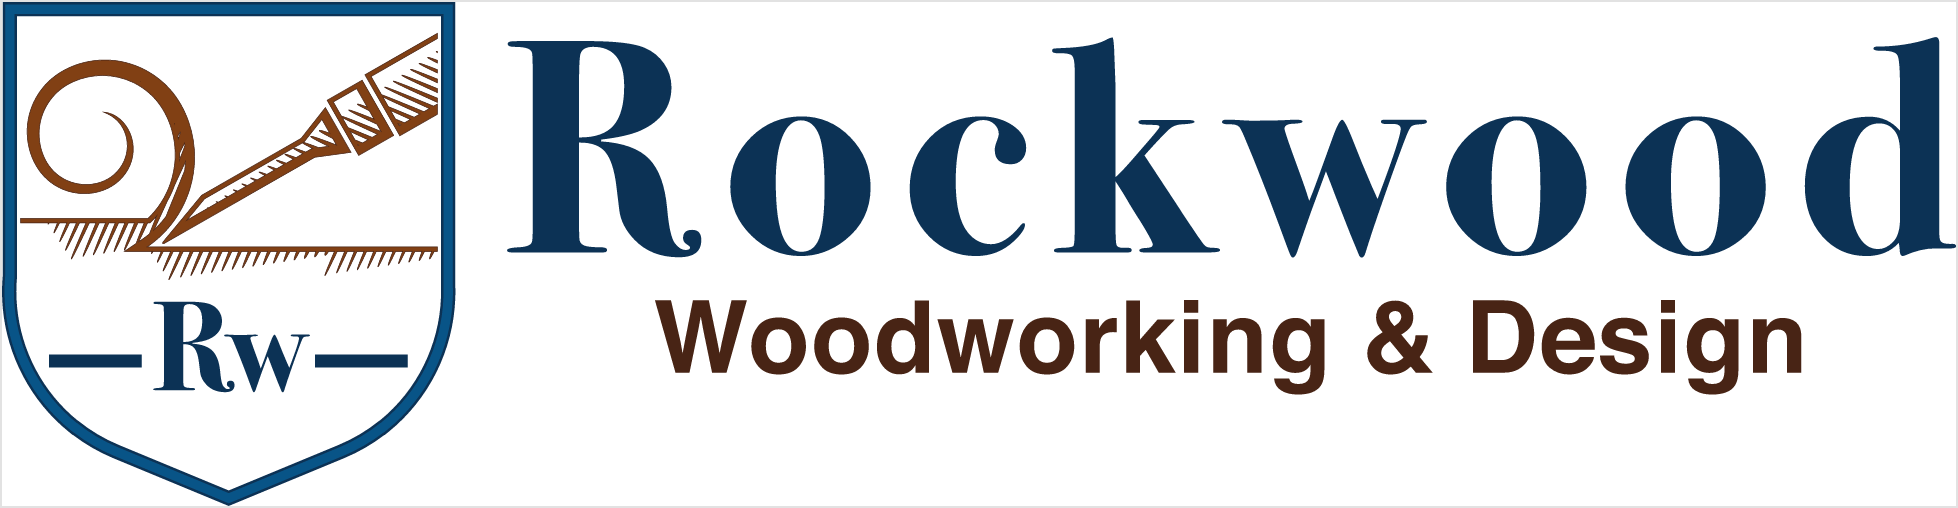 RockwoodWoodworking